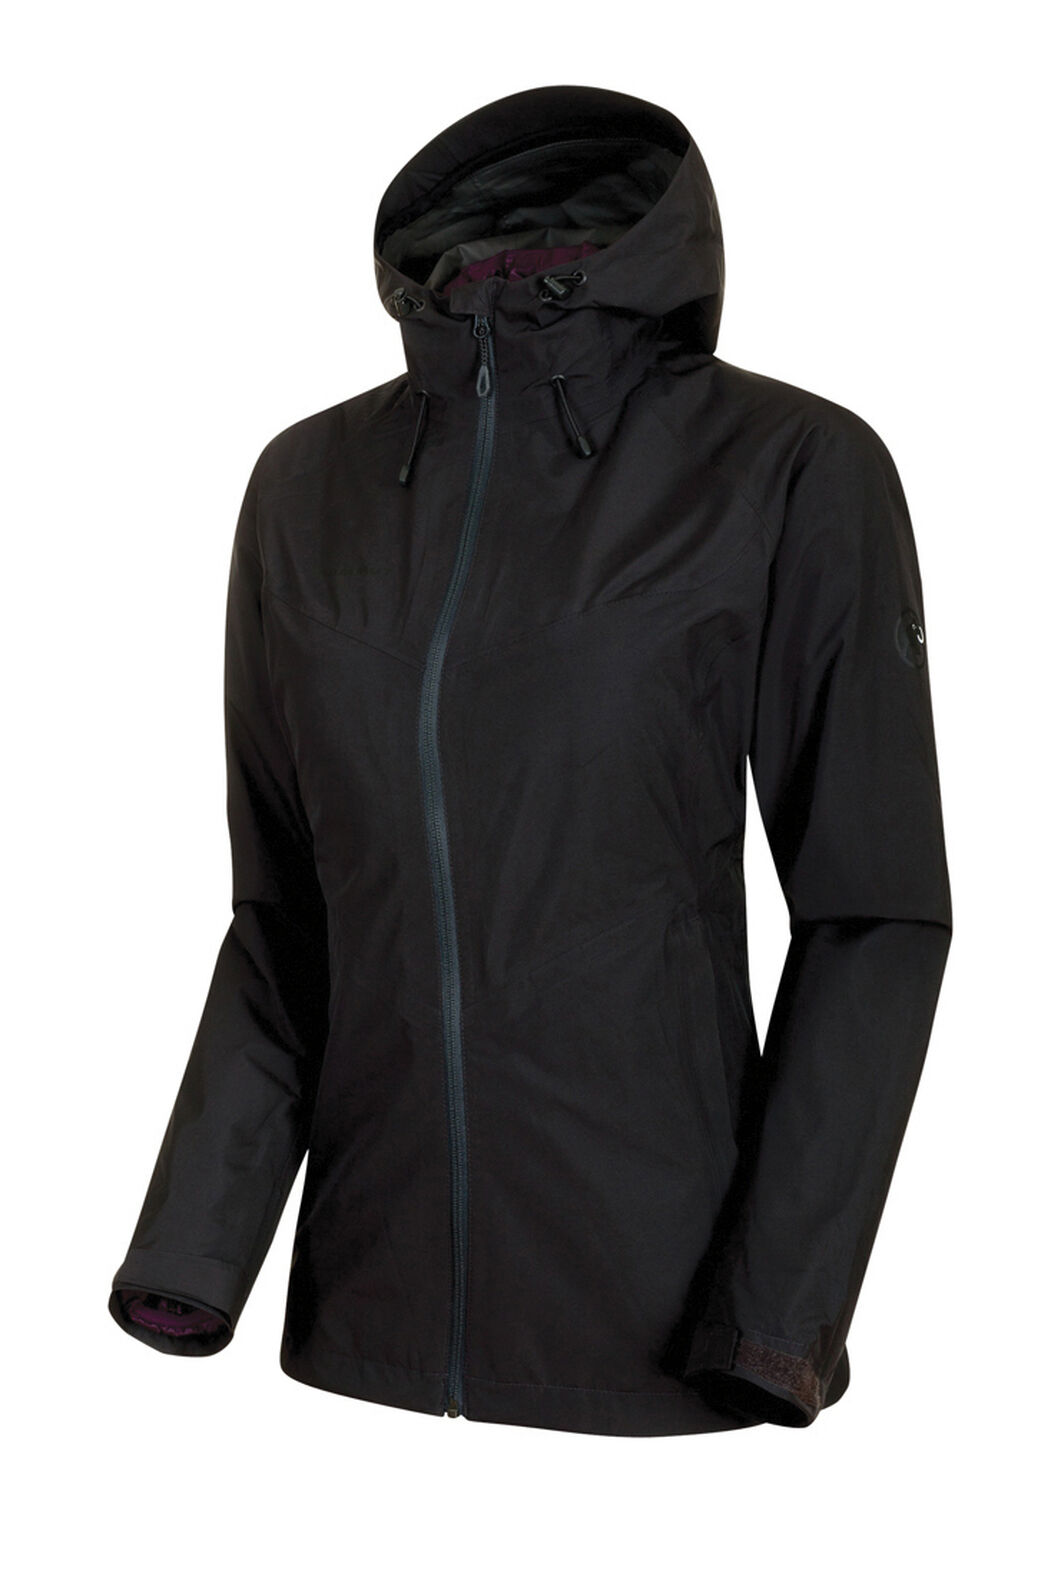 Mammut Convey 3 in 1 Hooded Hardshell Jacket - Women's, Black, hi-res